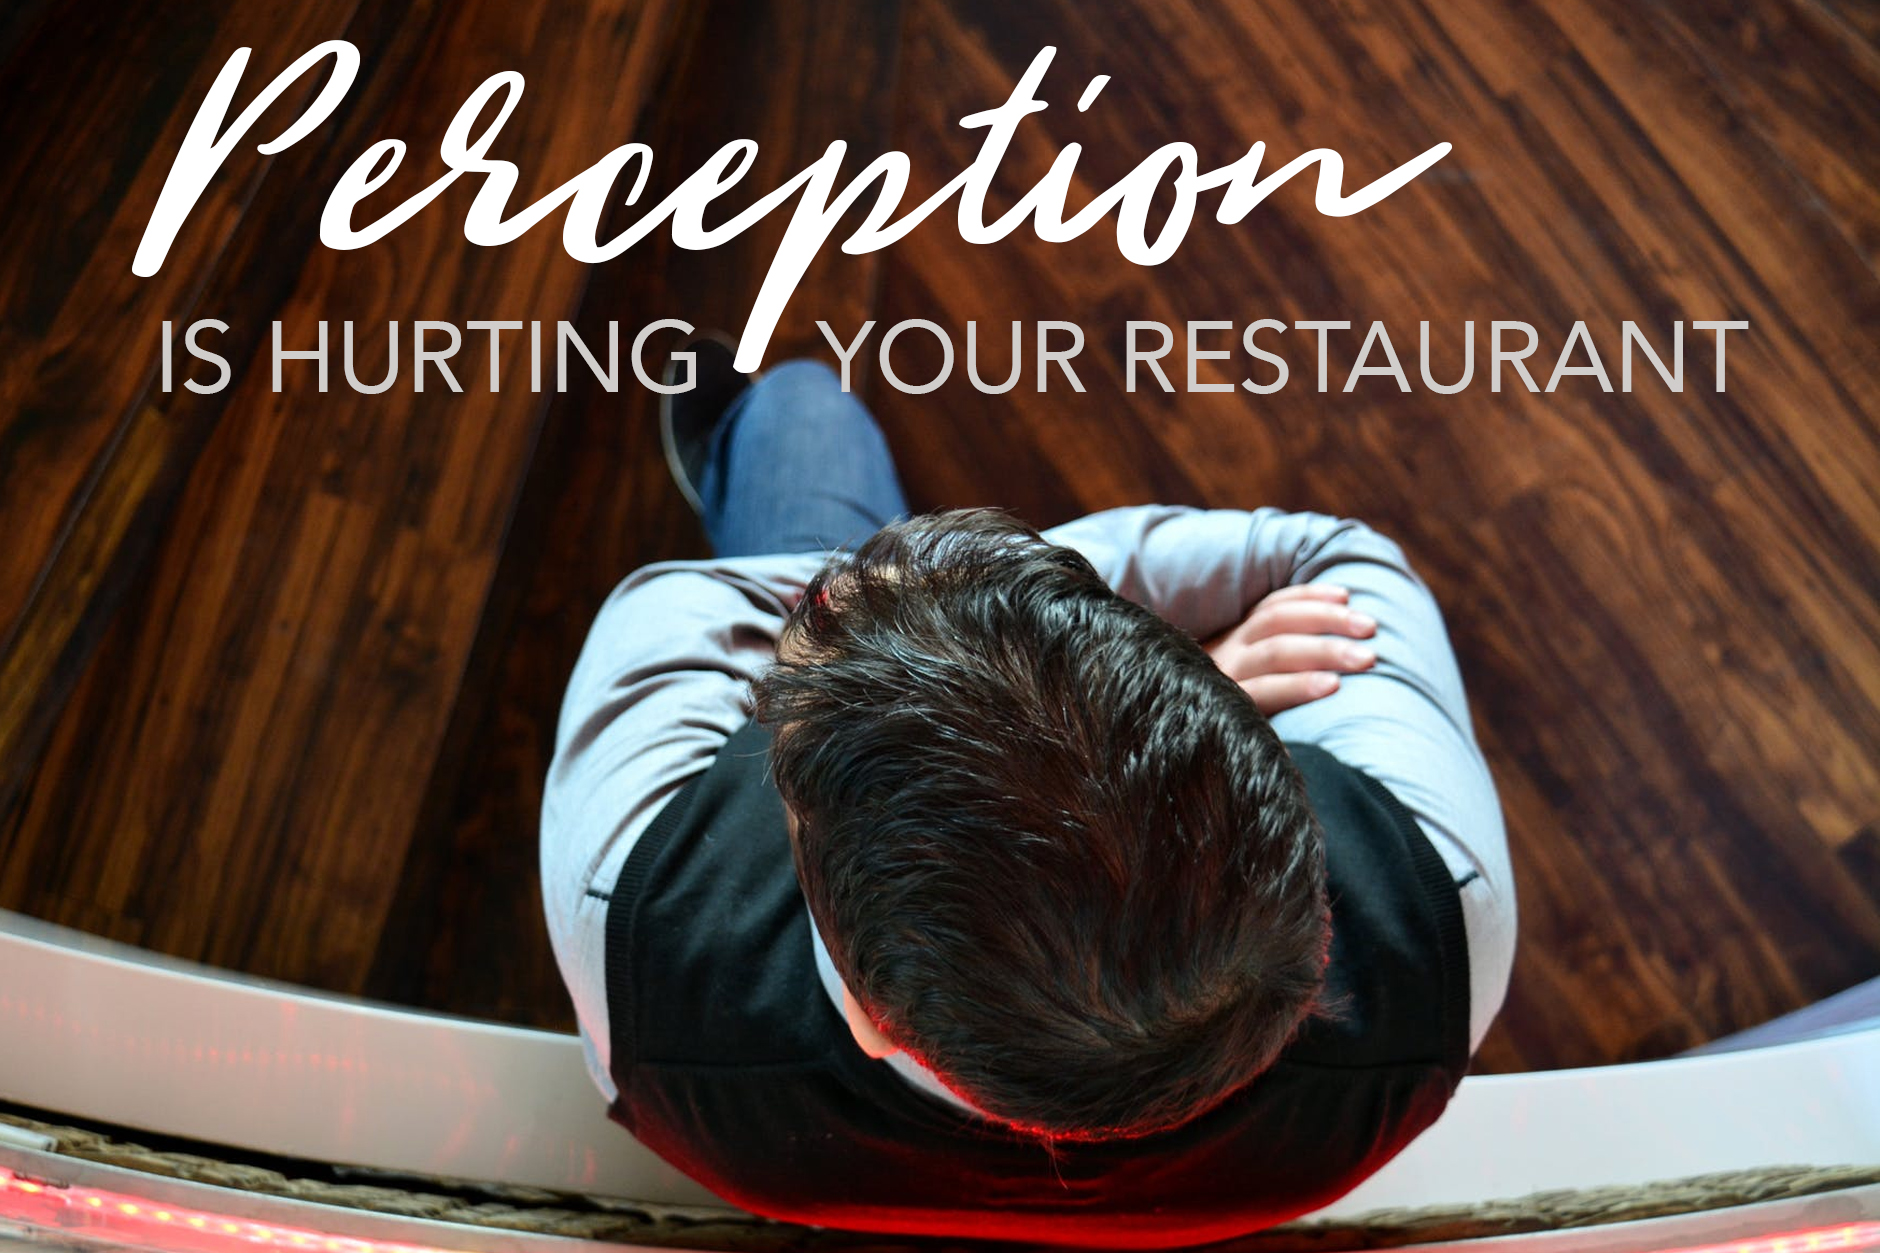 Perception is hurting your restaurant. Here's how to change it.